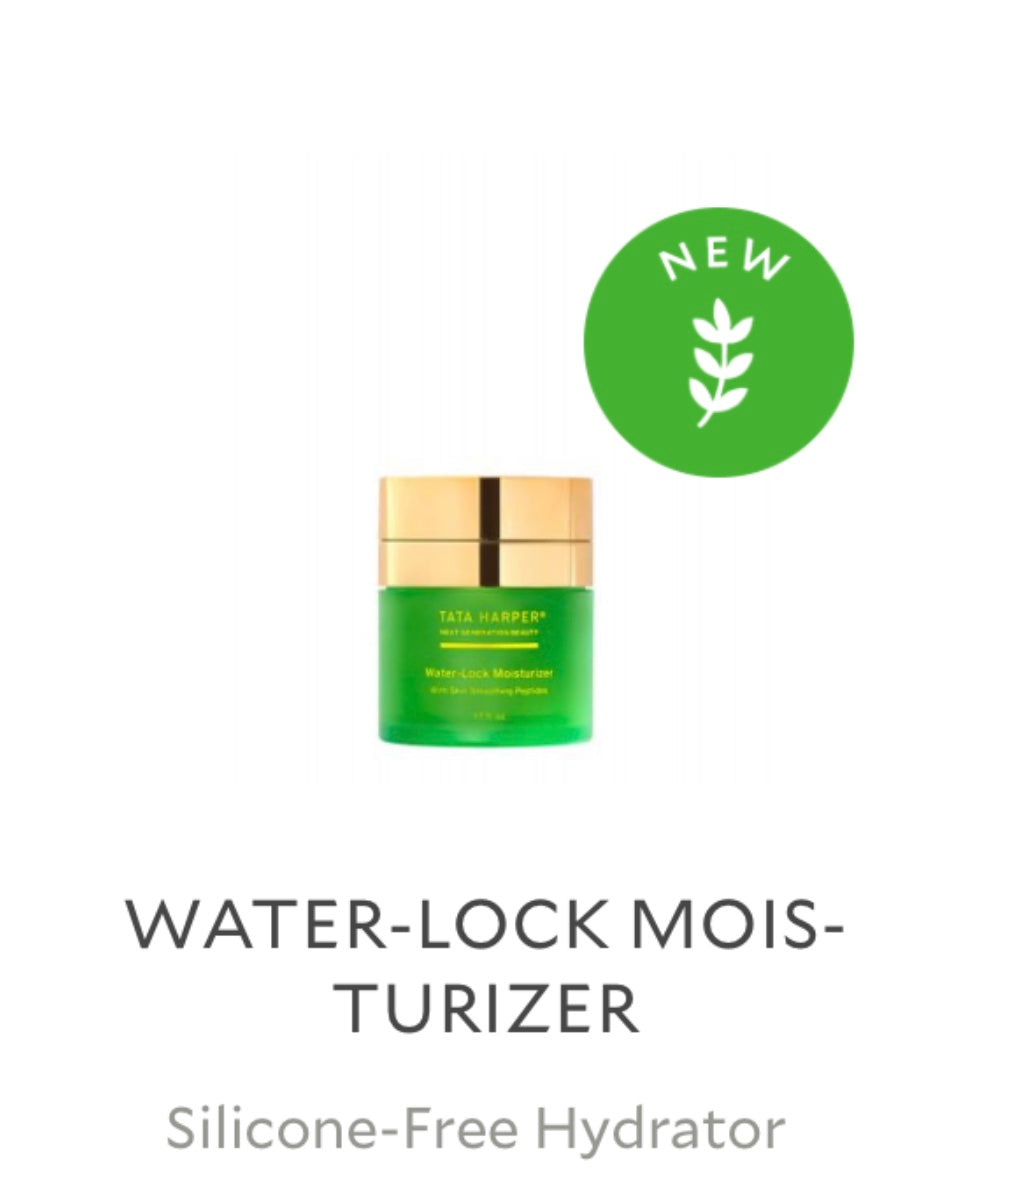 WATER-LOCK MOISTURIZER